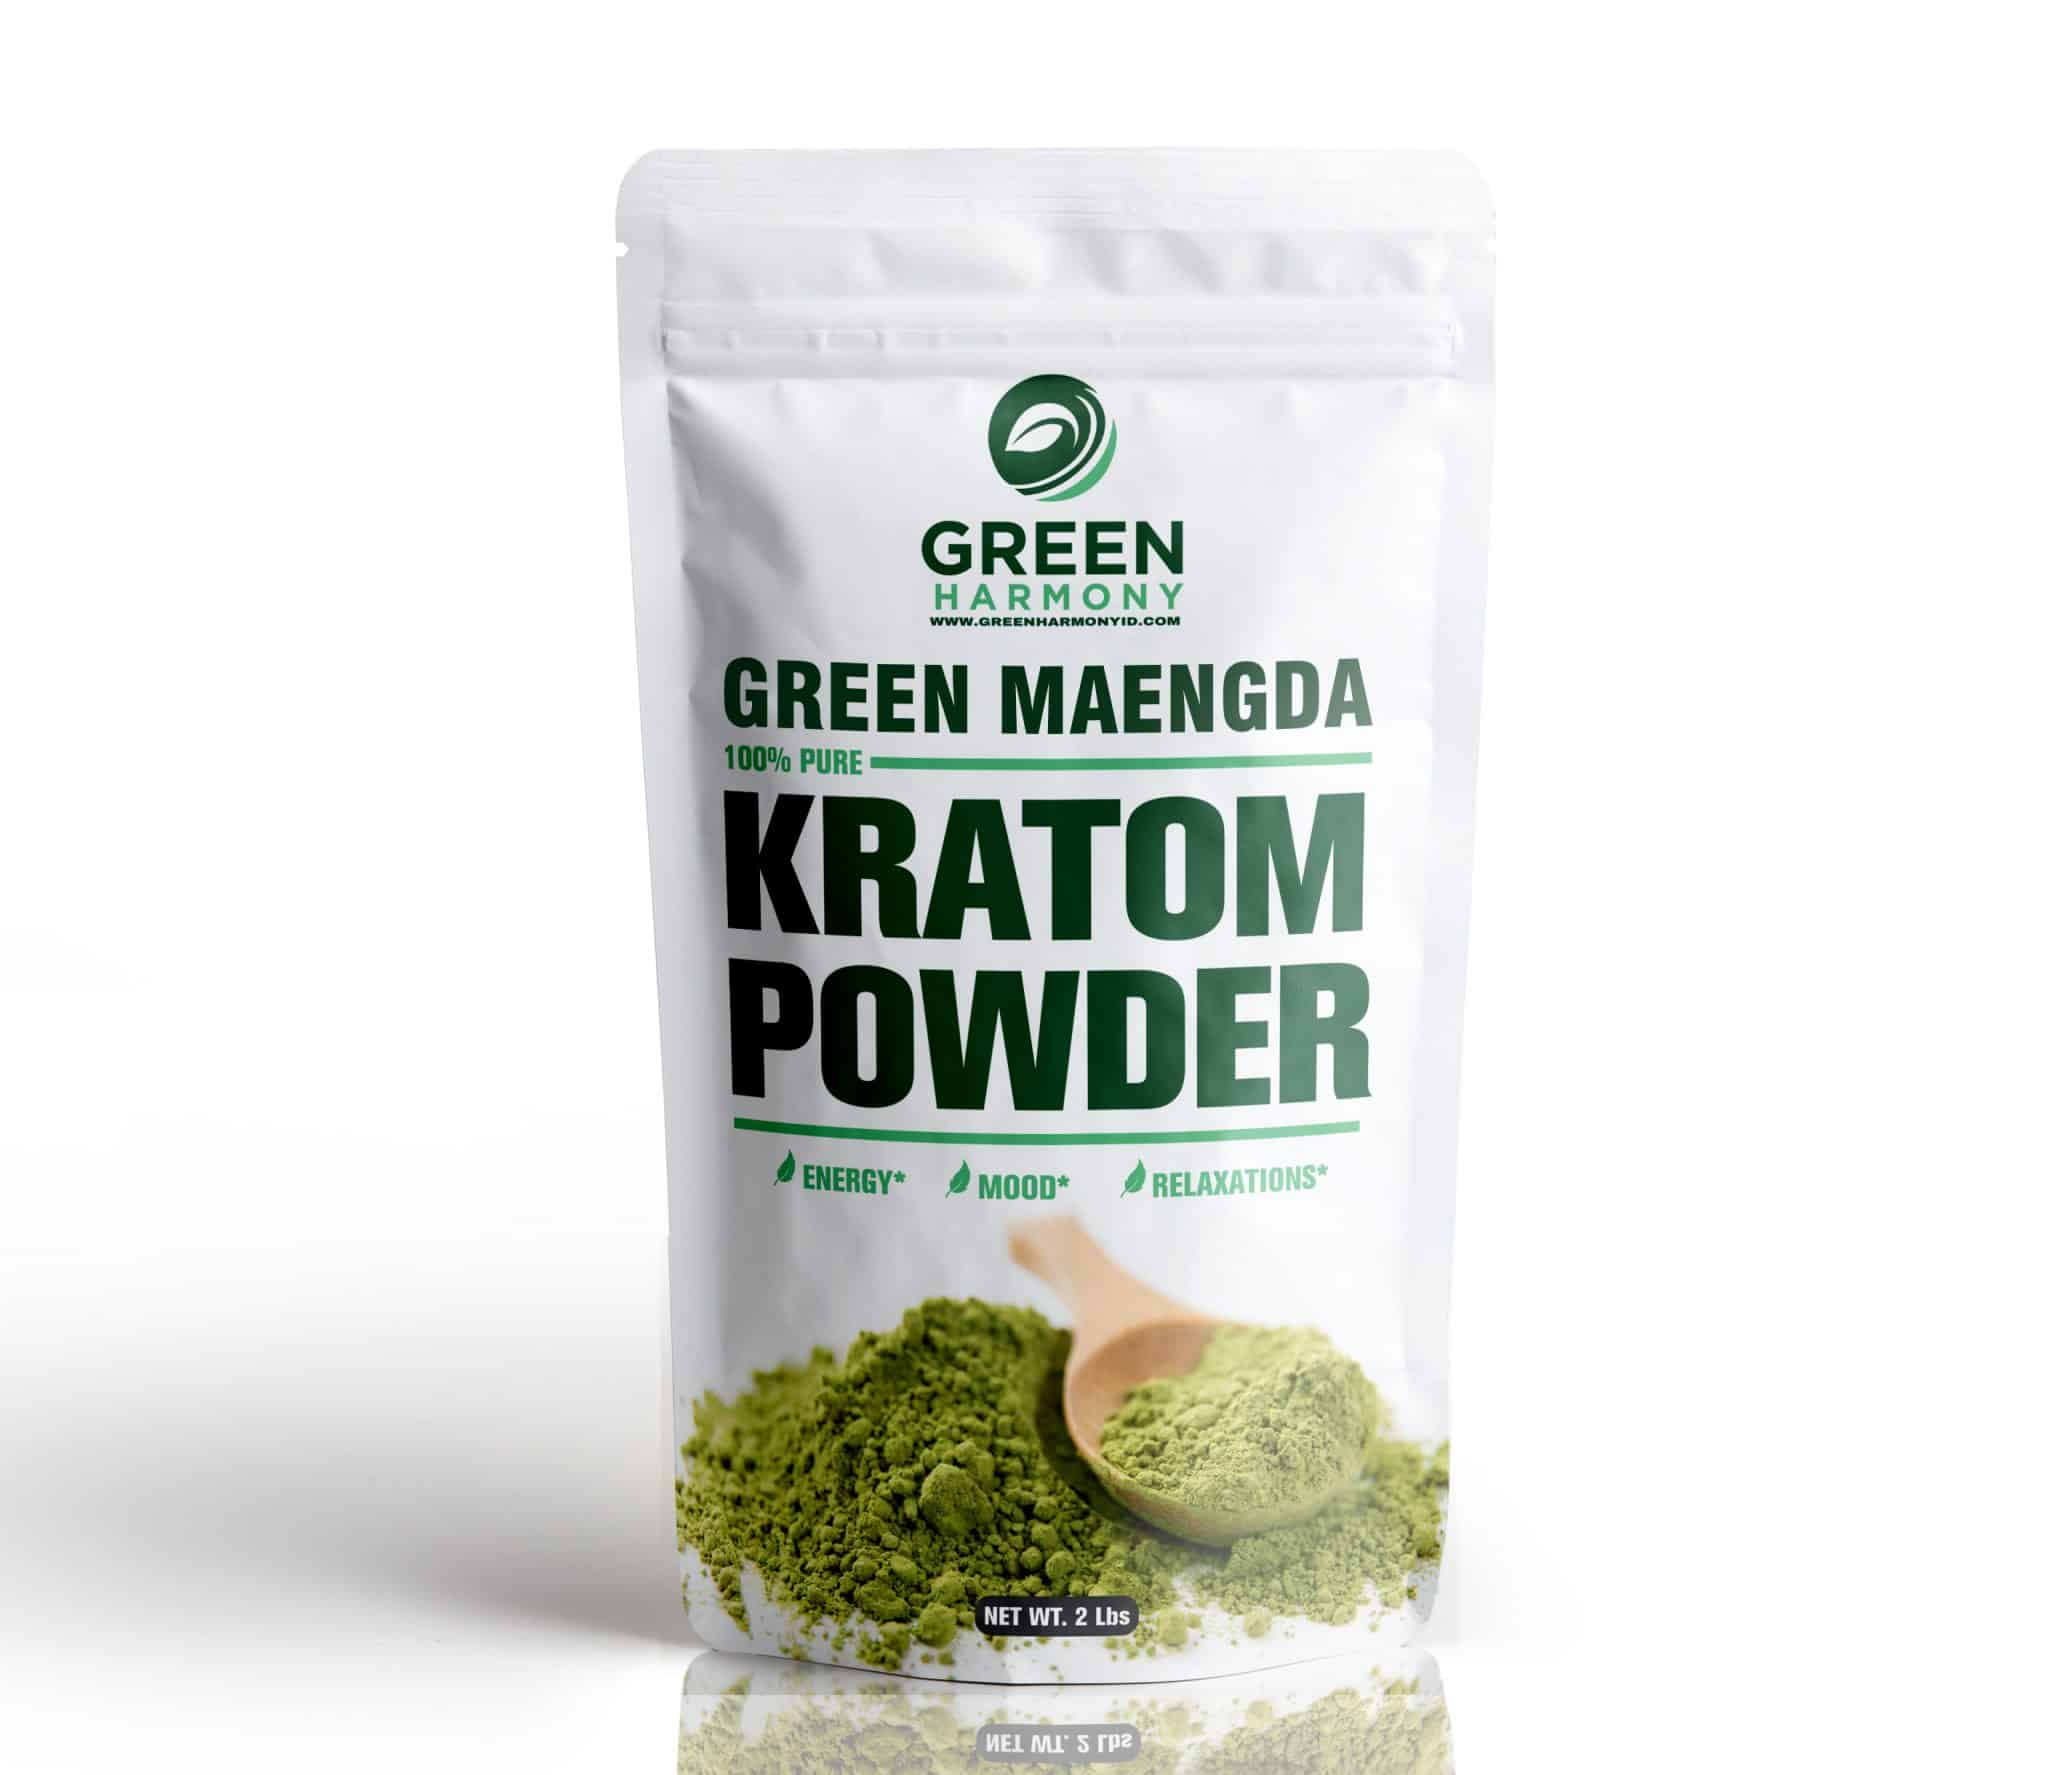 GREEN-MAENGDA Best Choice of Kratom Strains for Energy Booster & Dosage